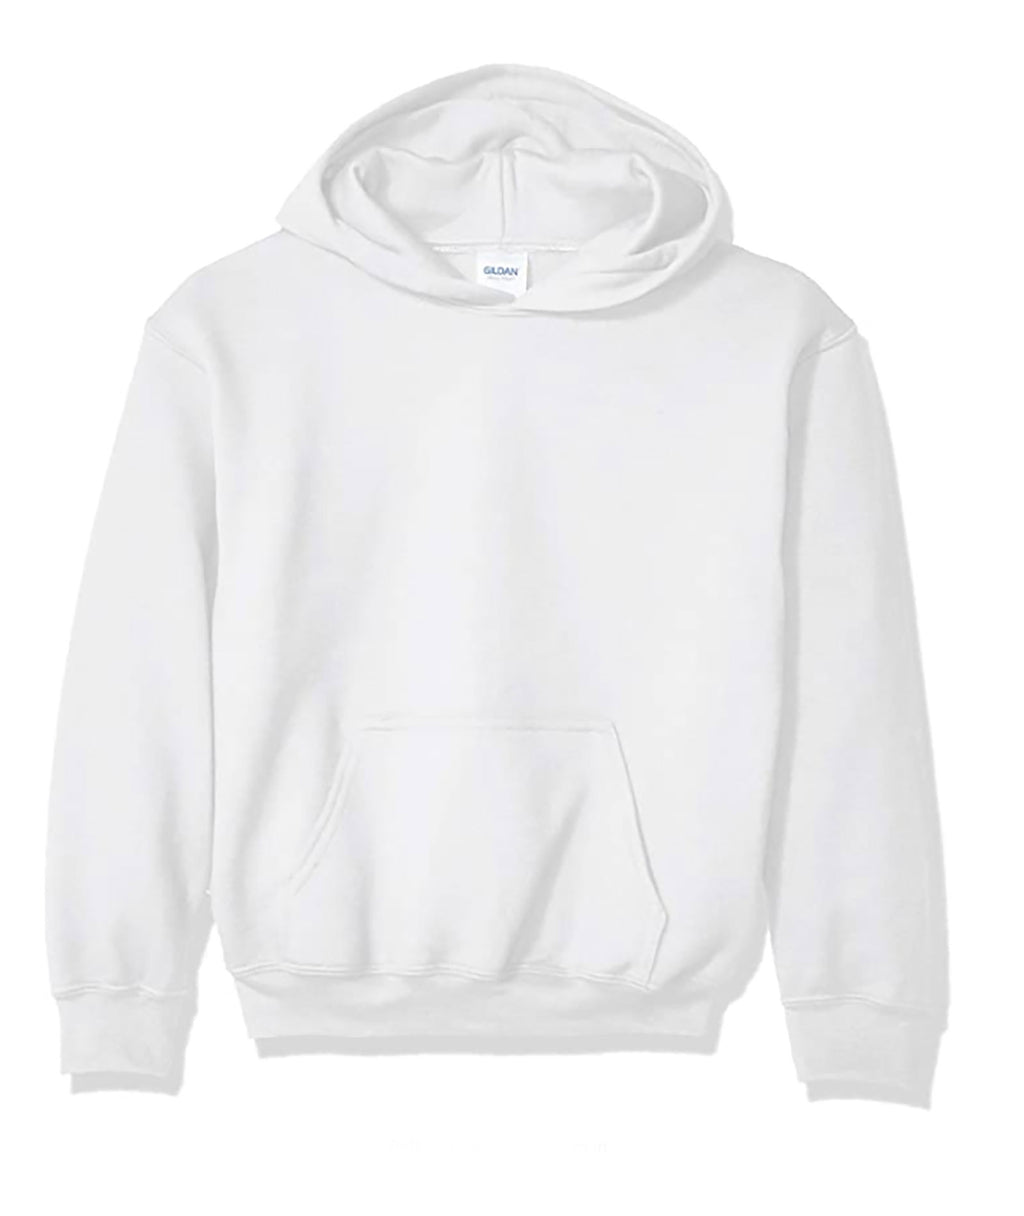 Gildan Adult Pullover Hoodie in White, Grey or Light Grey